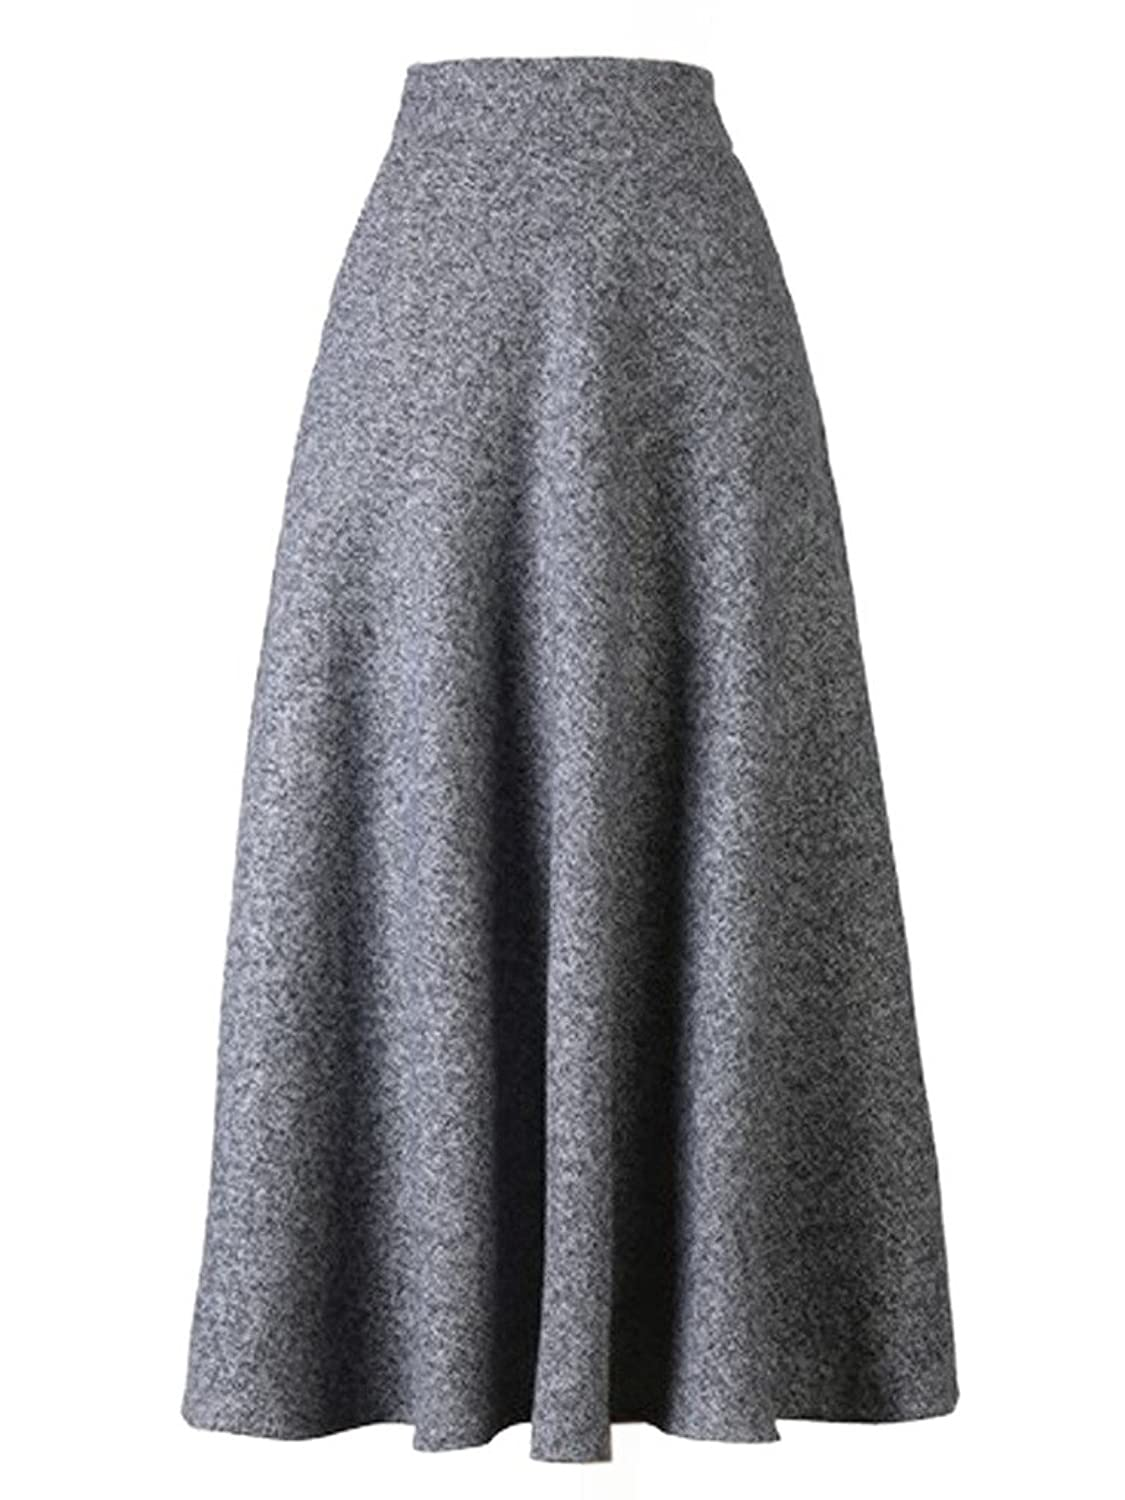 Agent Peggy Carter Costume, Dress, Hats Choies Womens High Waist A-line Flared Long Skirt Winter Fall Midi Skirt $33.99 AT vintagedancer.com